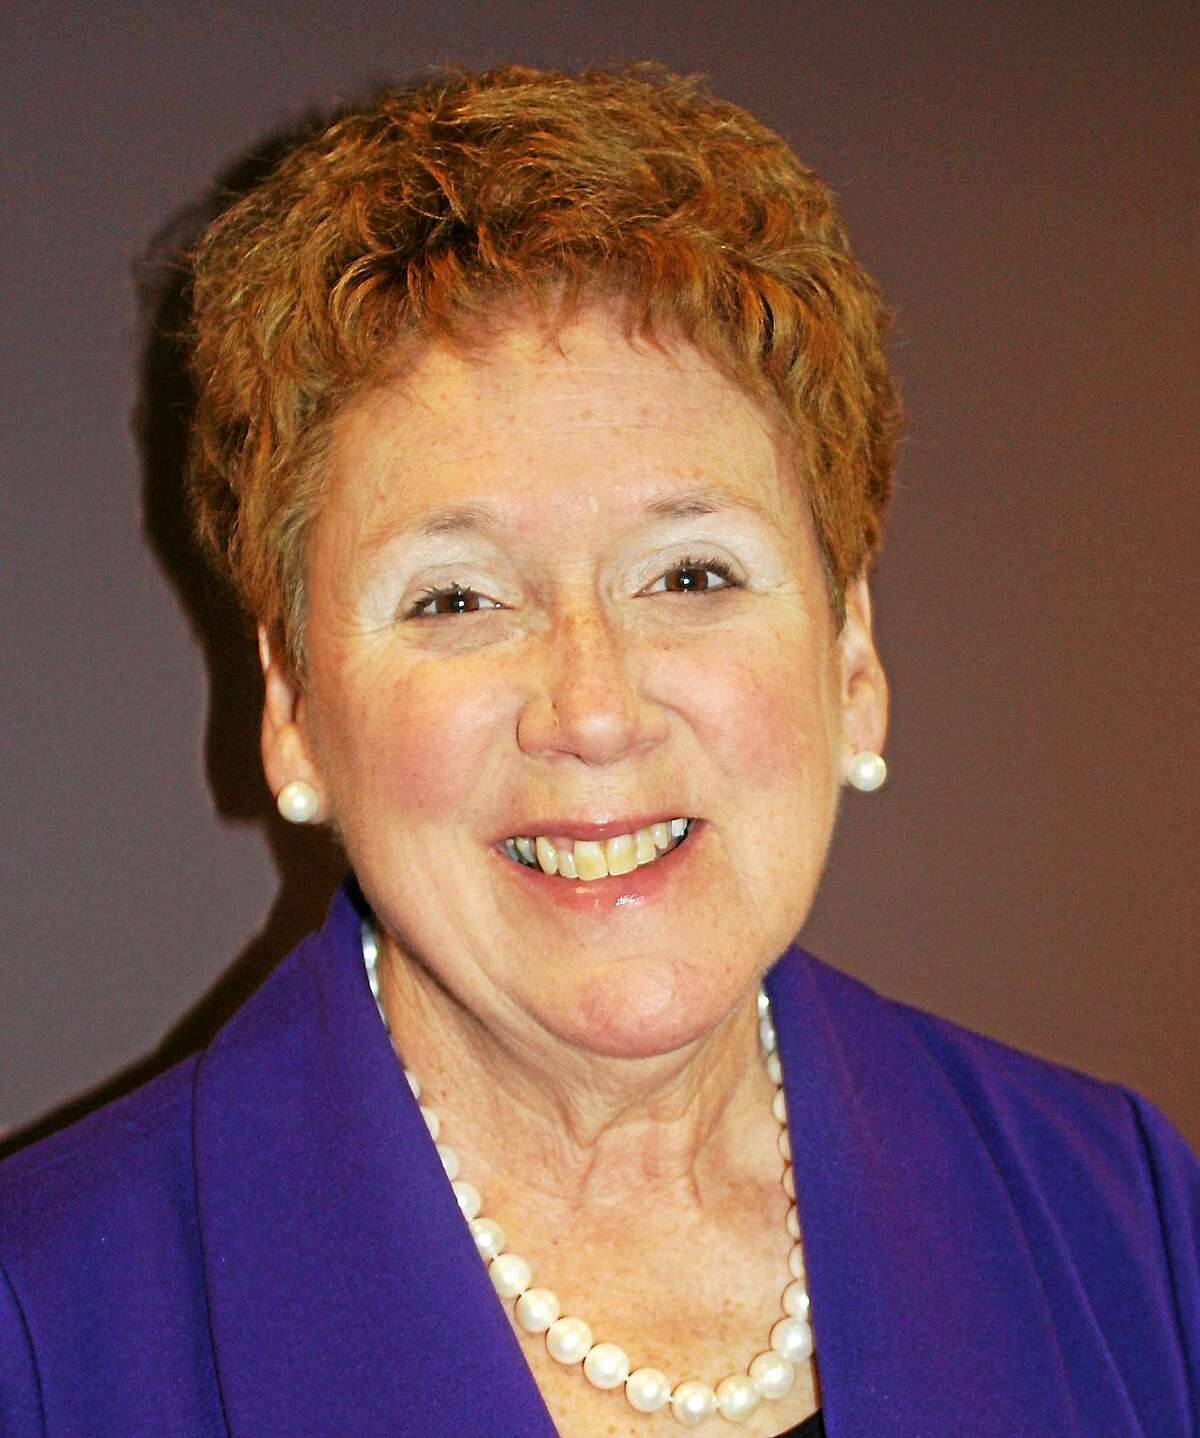 JoAnn Ryan, the President and CEO of Northwest Connecticut's Chamber of Commerce, will be honored with an award from Wisdom House.